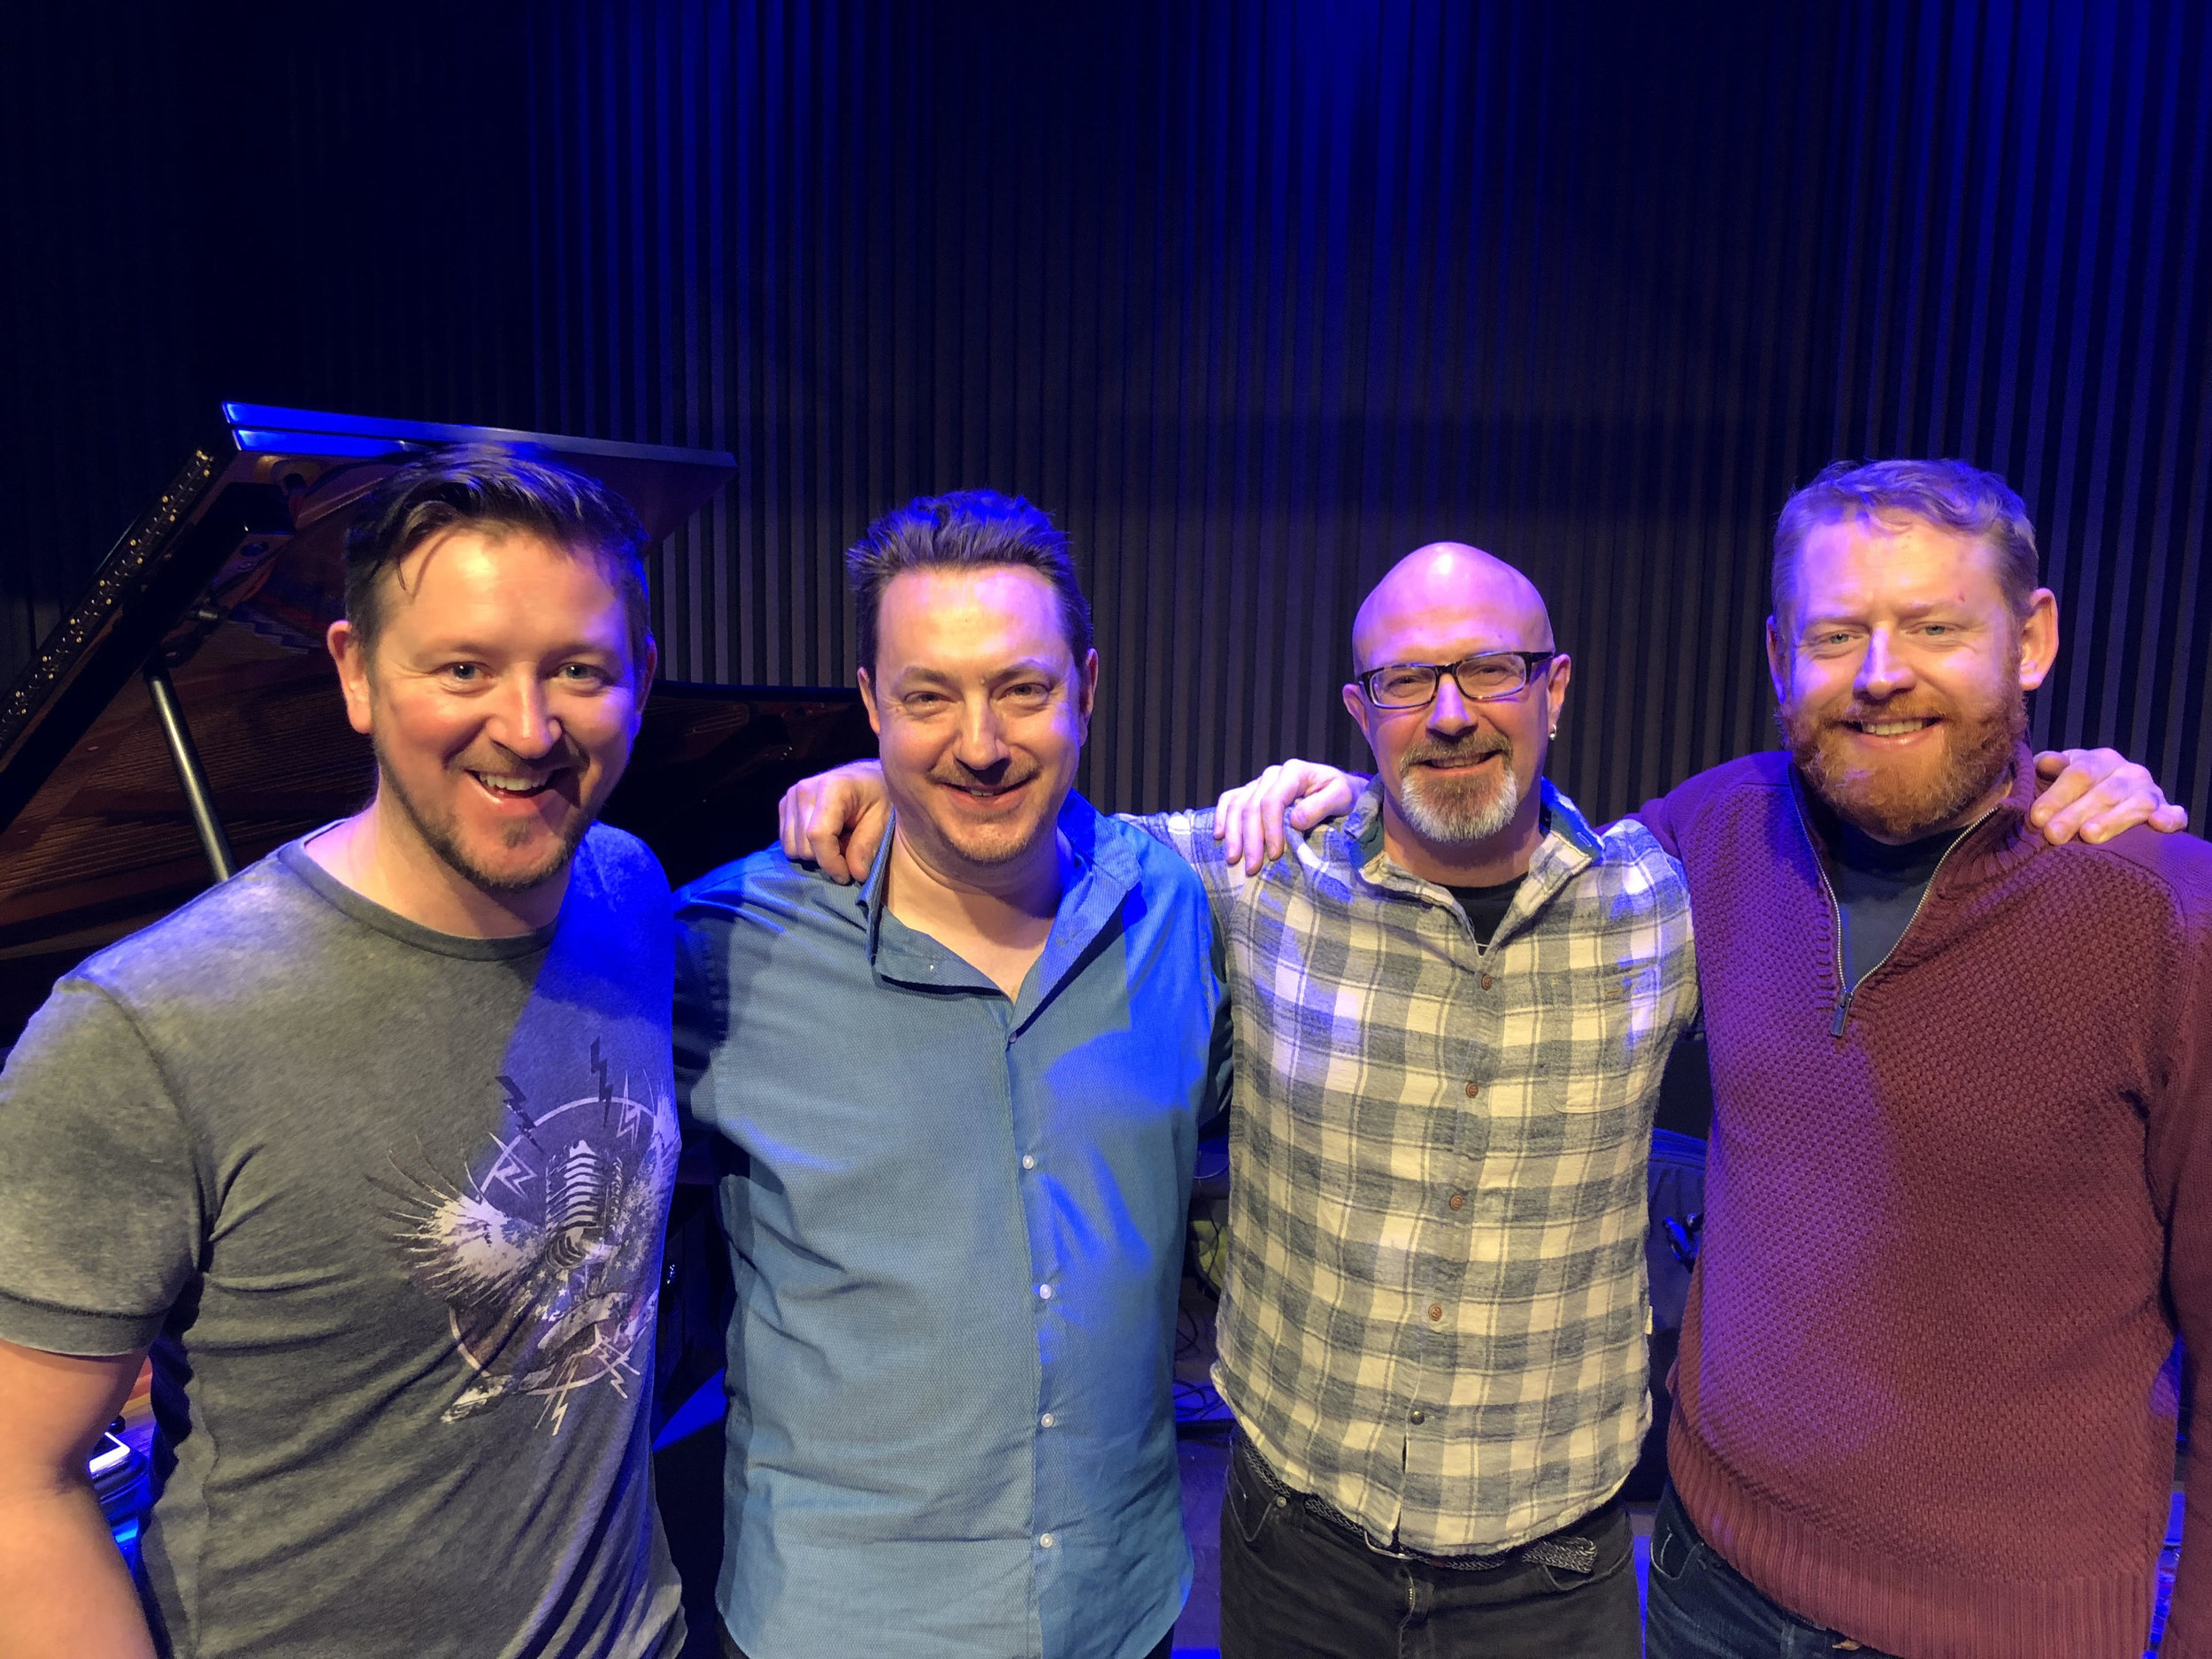 Left to Right: Paul Booth, Steve Hamilton, Dave Whitford, Andrew Bain.